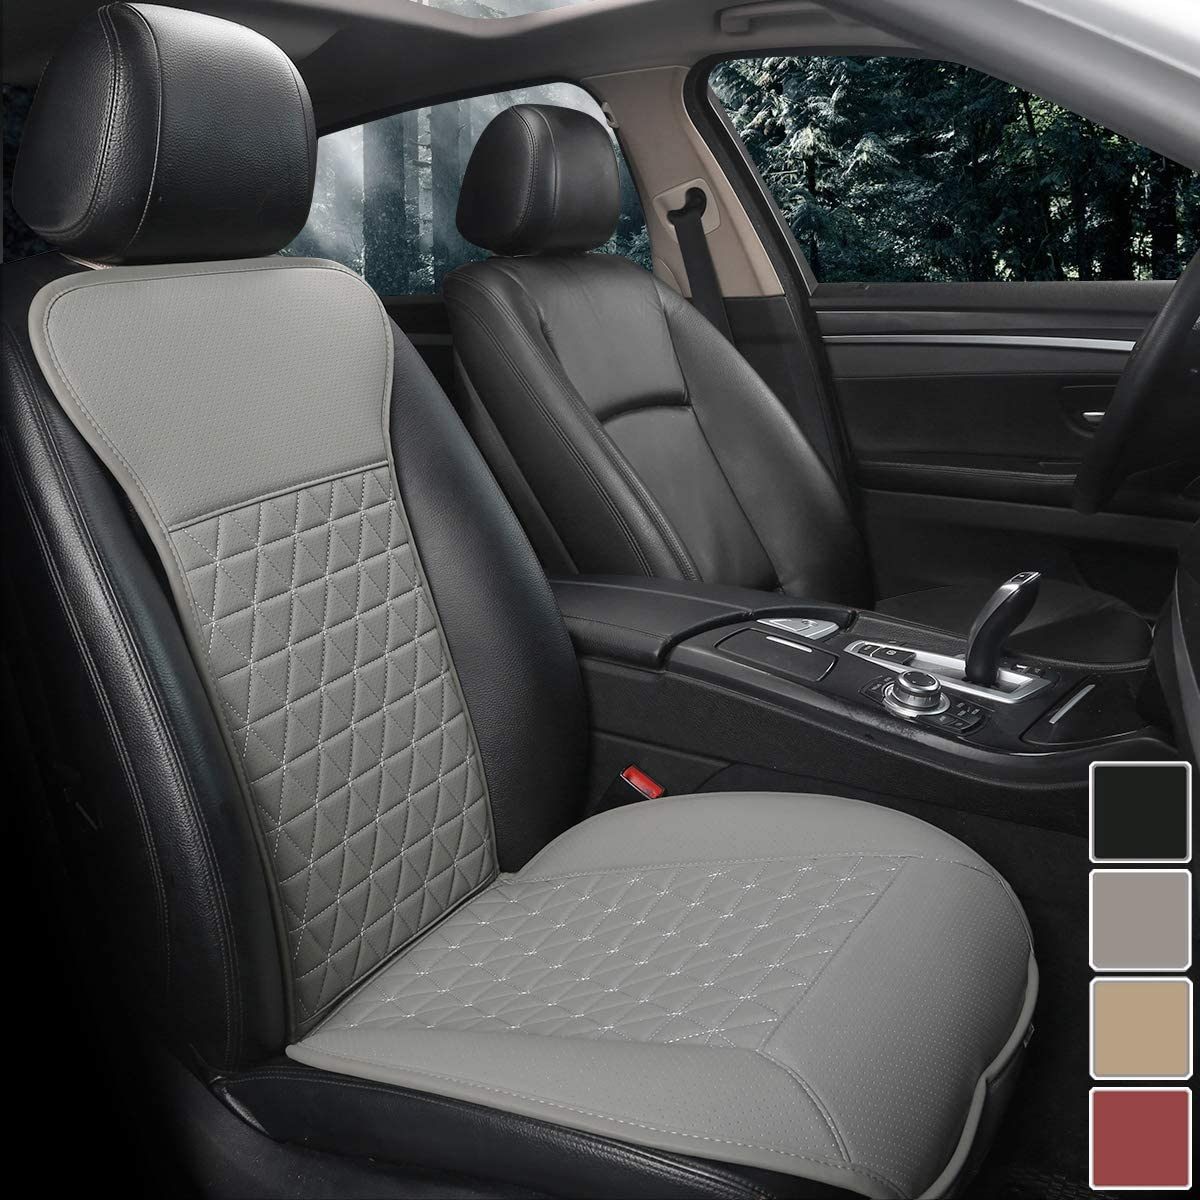 Black Panther 1 Piece Luxury PU Leather Front Car Seat Cover Protector Compatible with 95% Cars (Sedan/SUV/Pickup/Van), Triangle Quilted Design - Grey